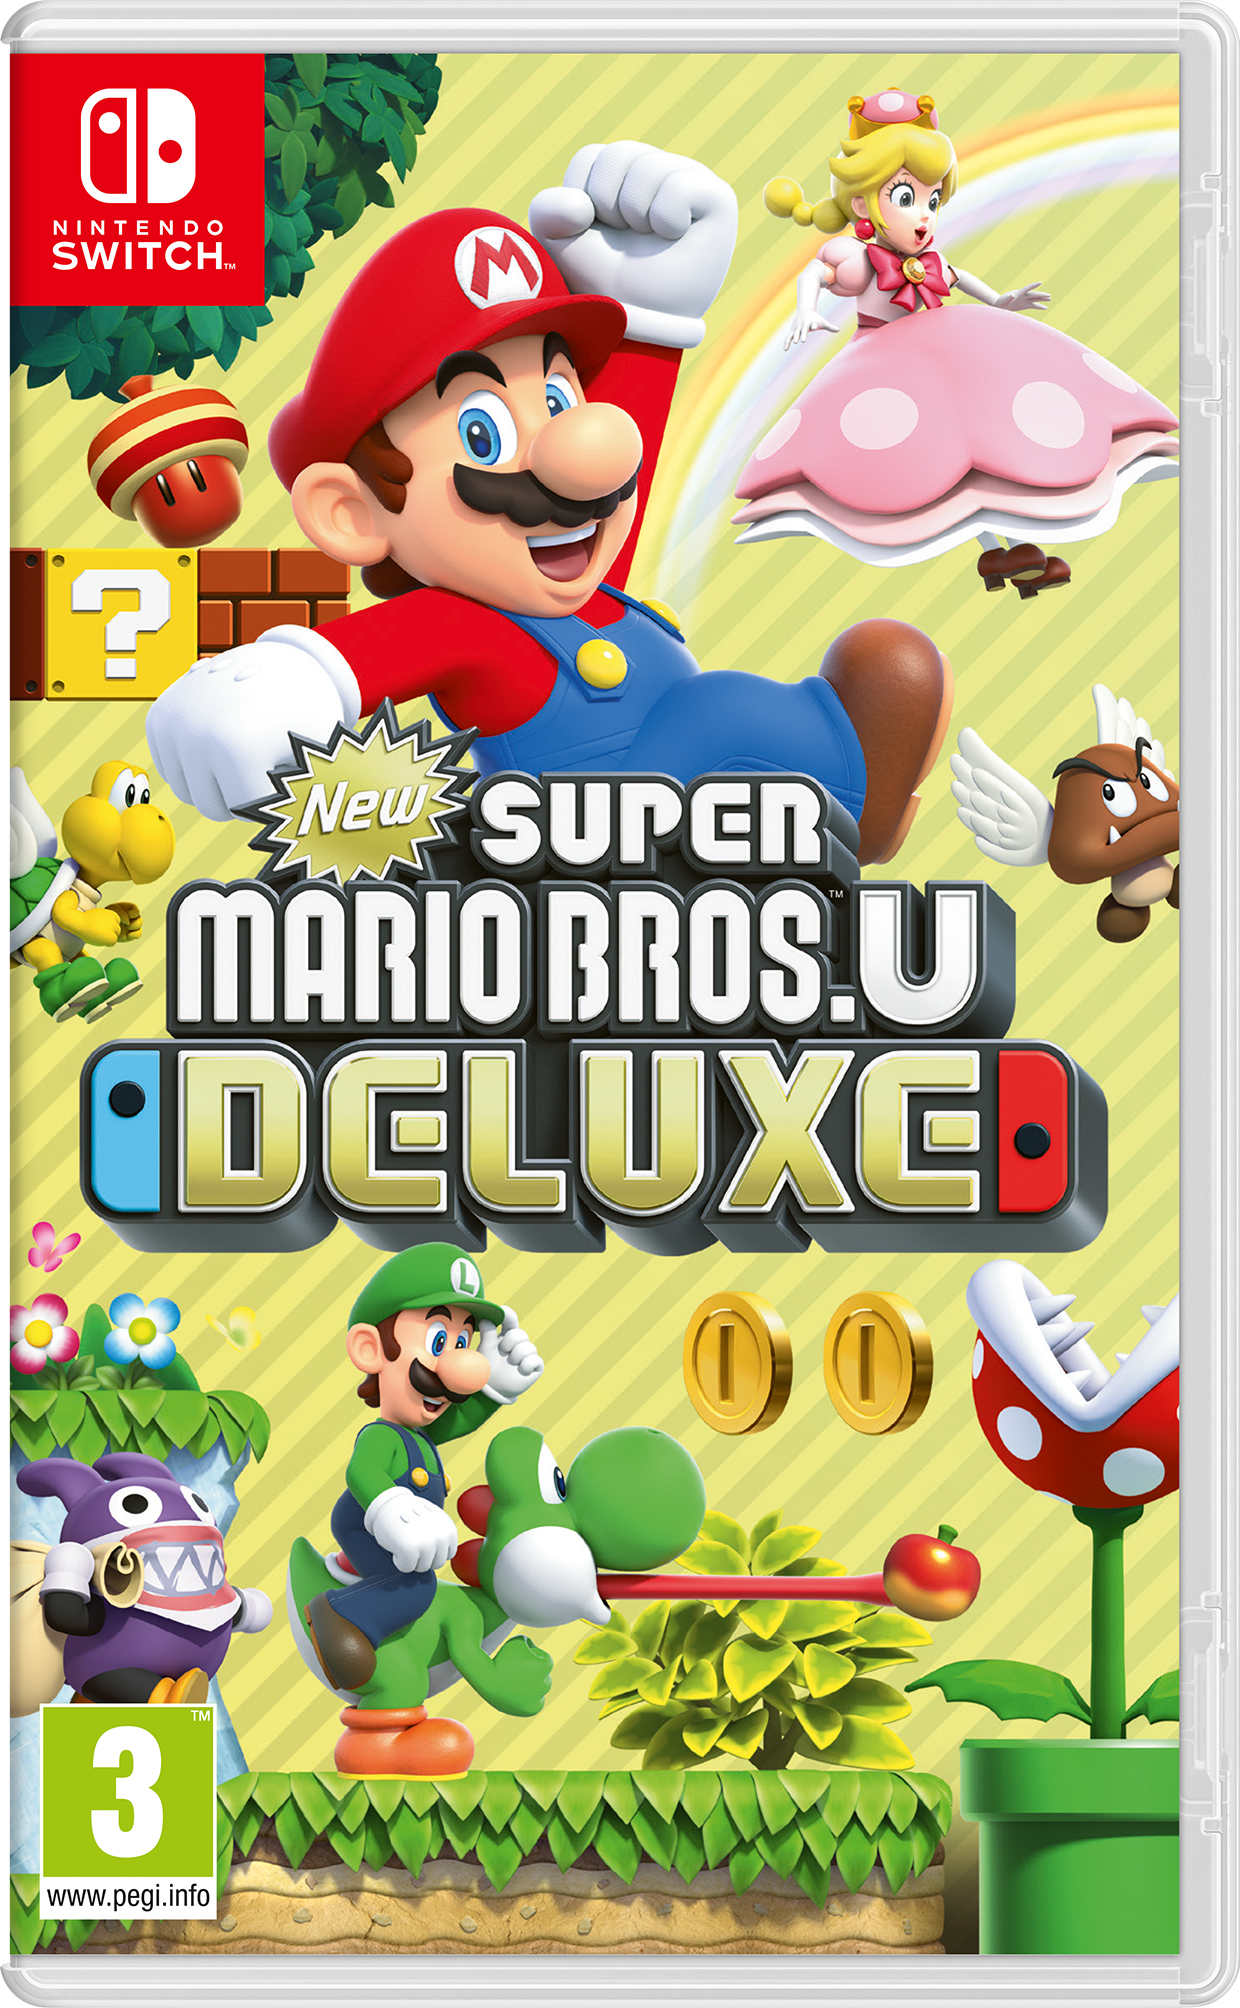 Nintendo New Super Mario Bros. U Deluxe Nintendo Switch New Super Mario Bros U Deluxe - 2525649